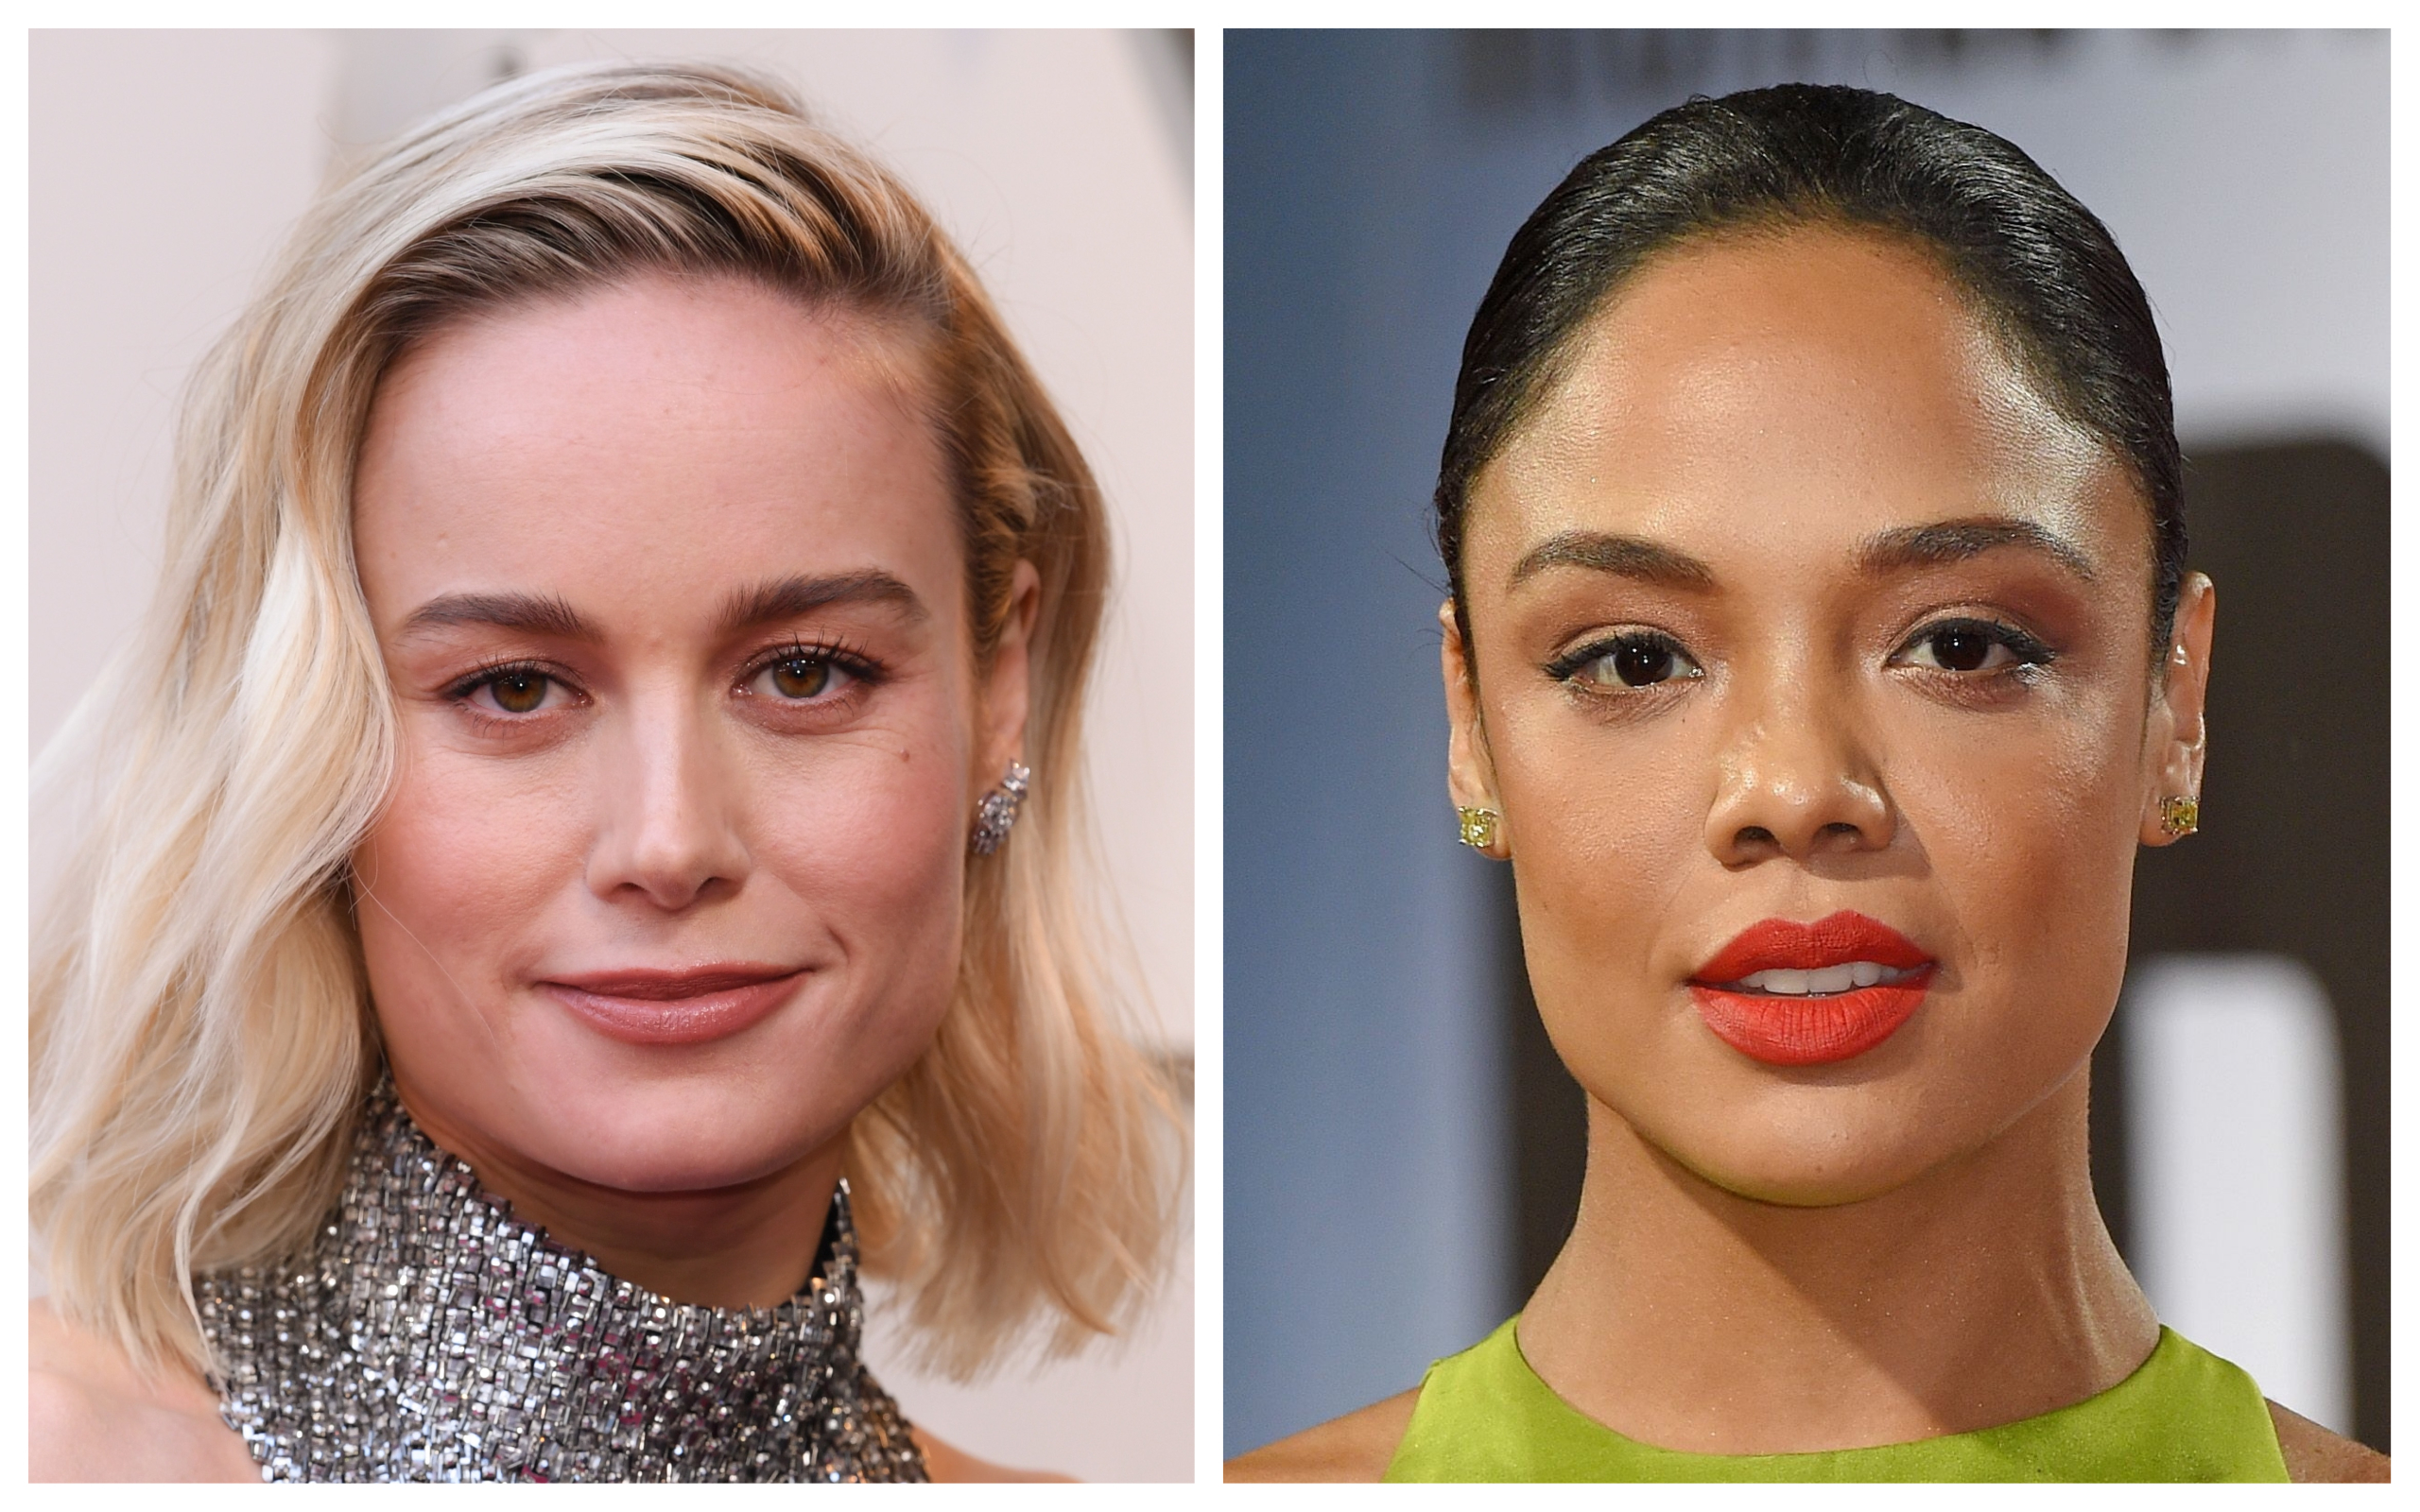 Tessa Thompson Says Marvel Co-Star Brie Larson Is Helping Make 'Real Systemic Change in Hollywood'